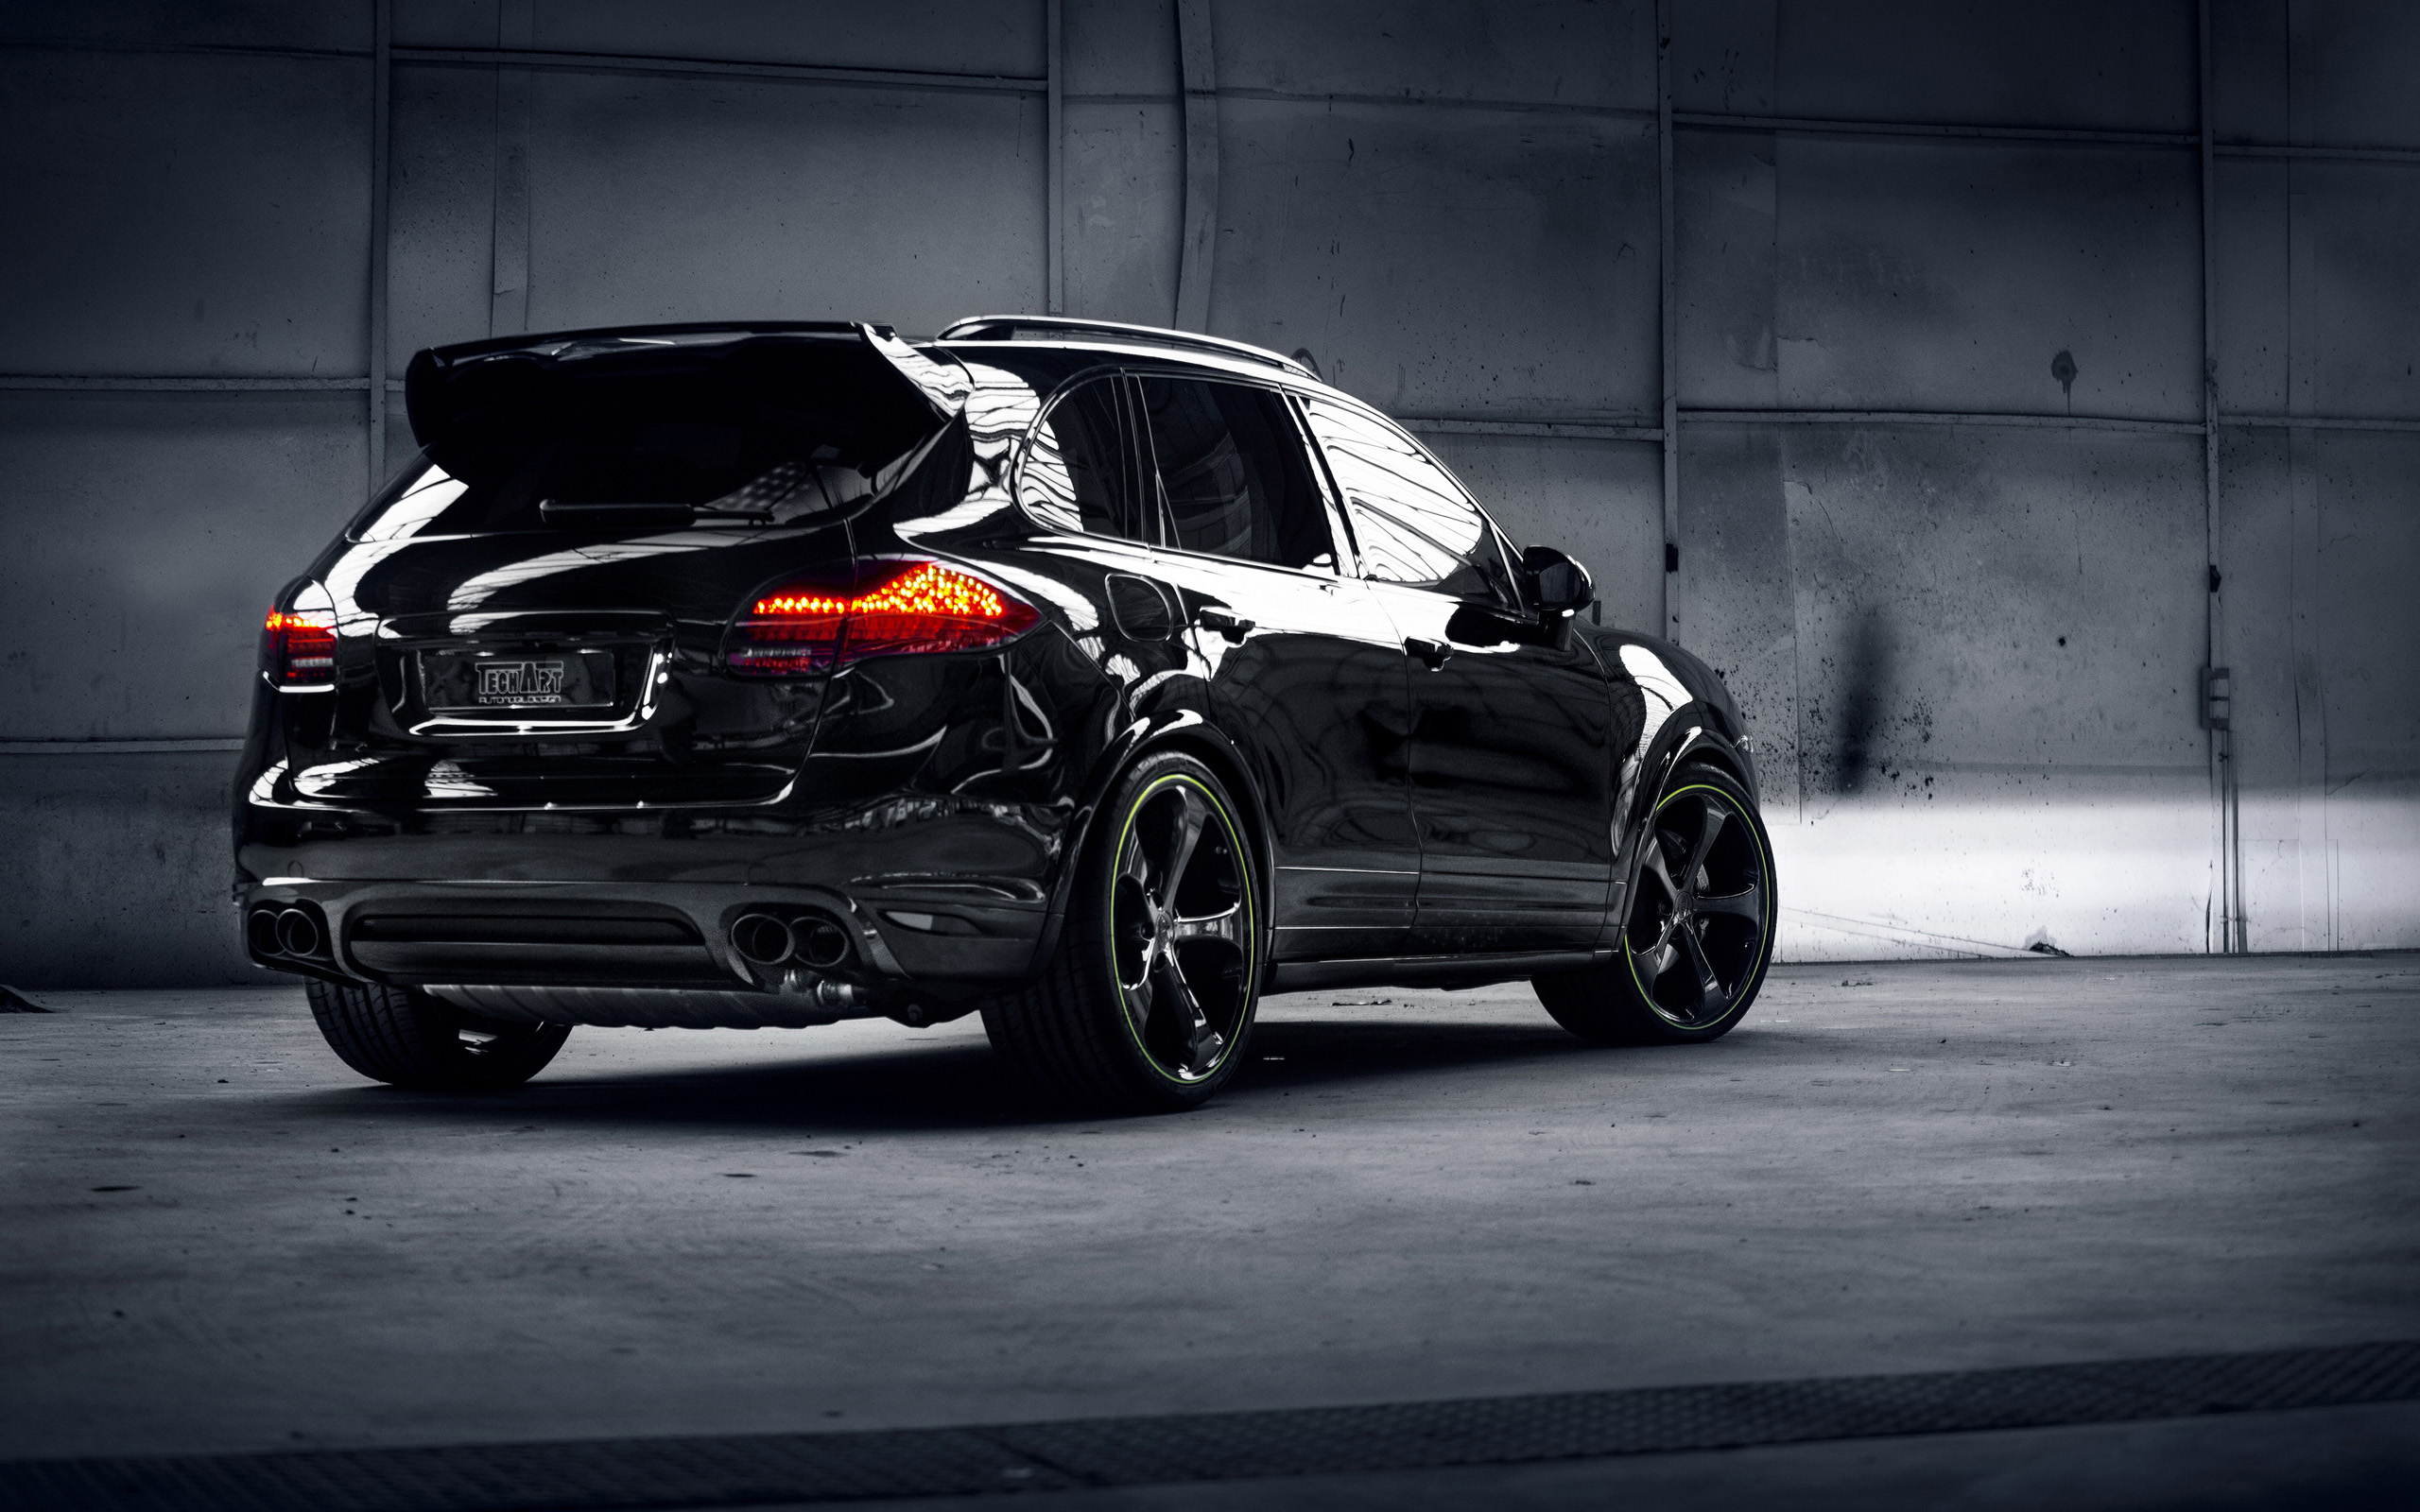 2013 TechArt Porsche Cayenne S Diesel 2 Wallpaper | HD Car Wallpapers